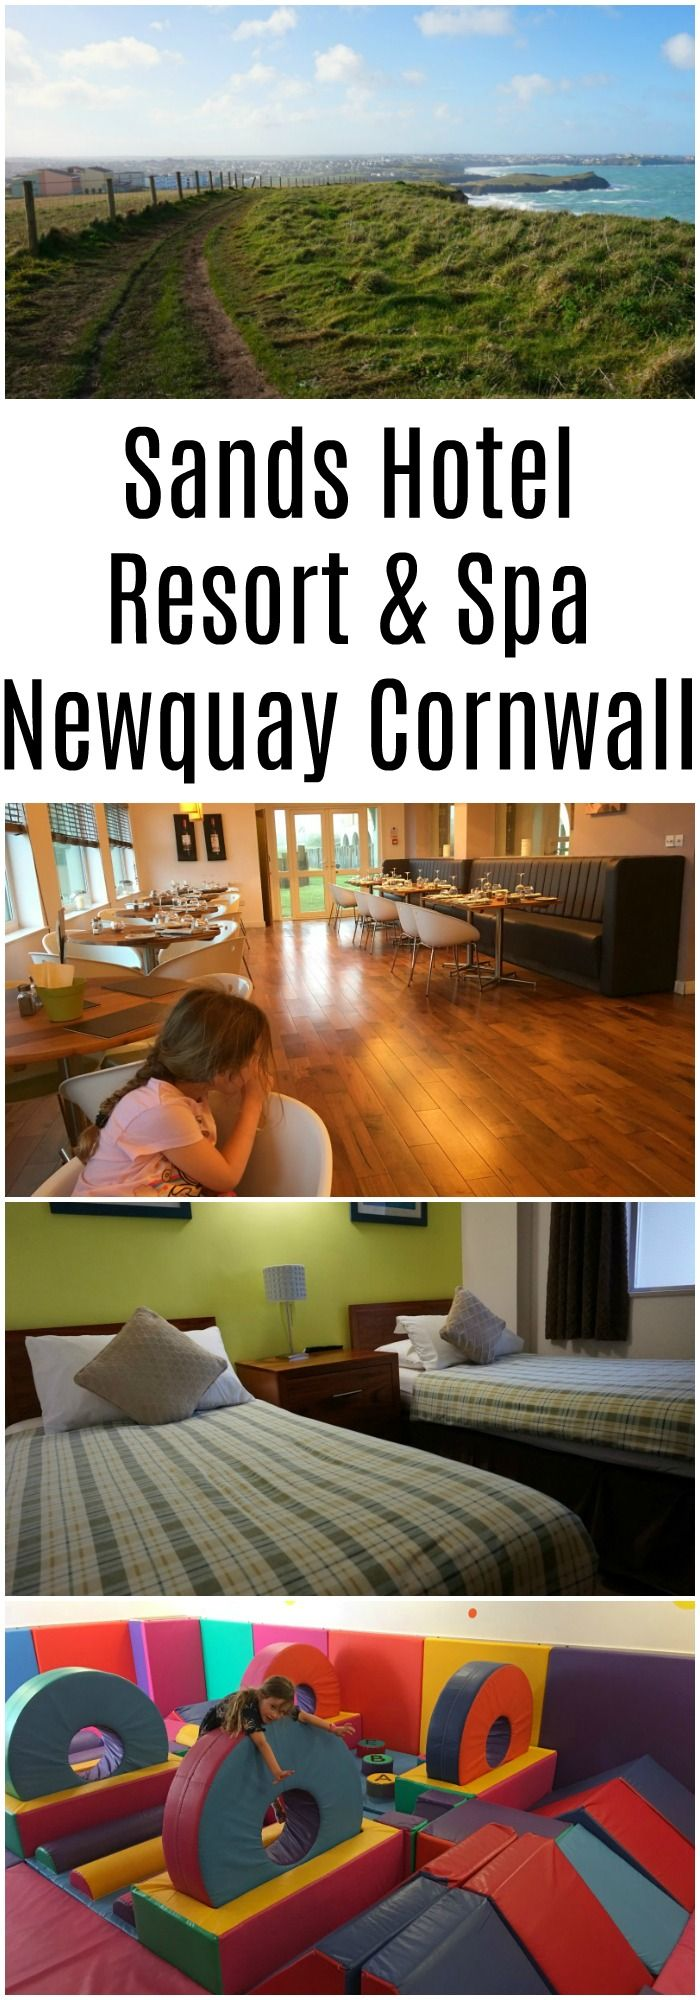 Reviewed: Sands Hotel Resort & Spa Newquay, Cornwall - Zena's Suitcase